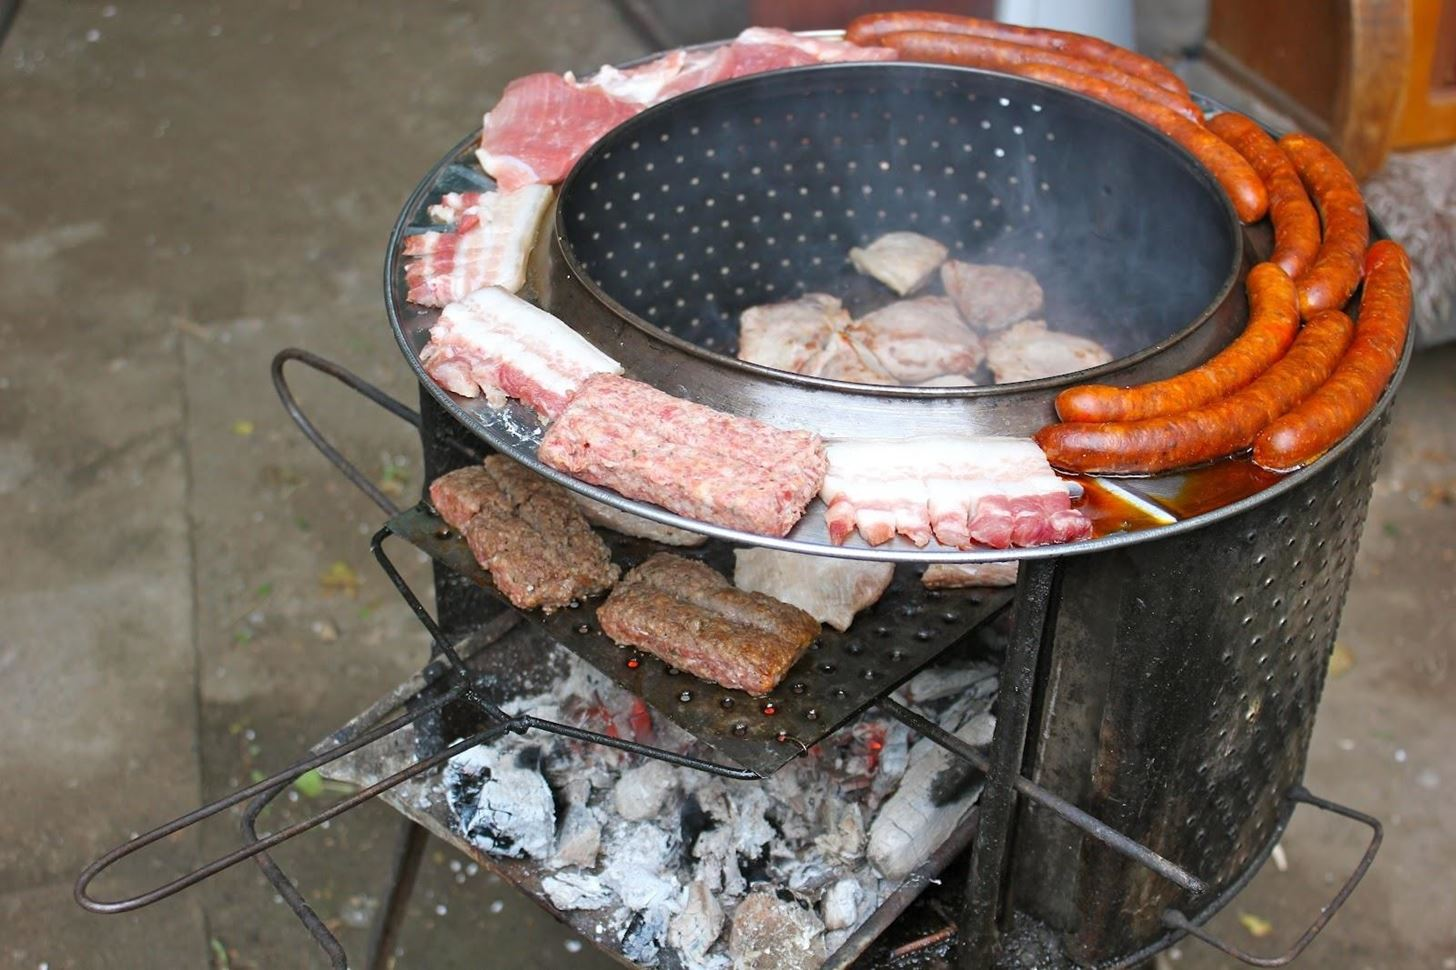 10-clever-ways-cook-out-without-grill_w1456.jpg